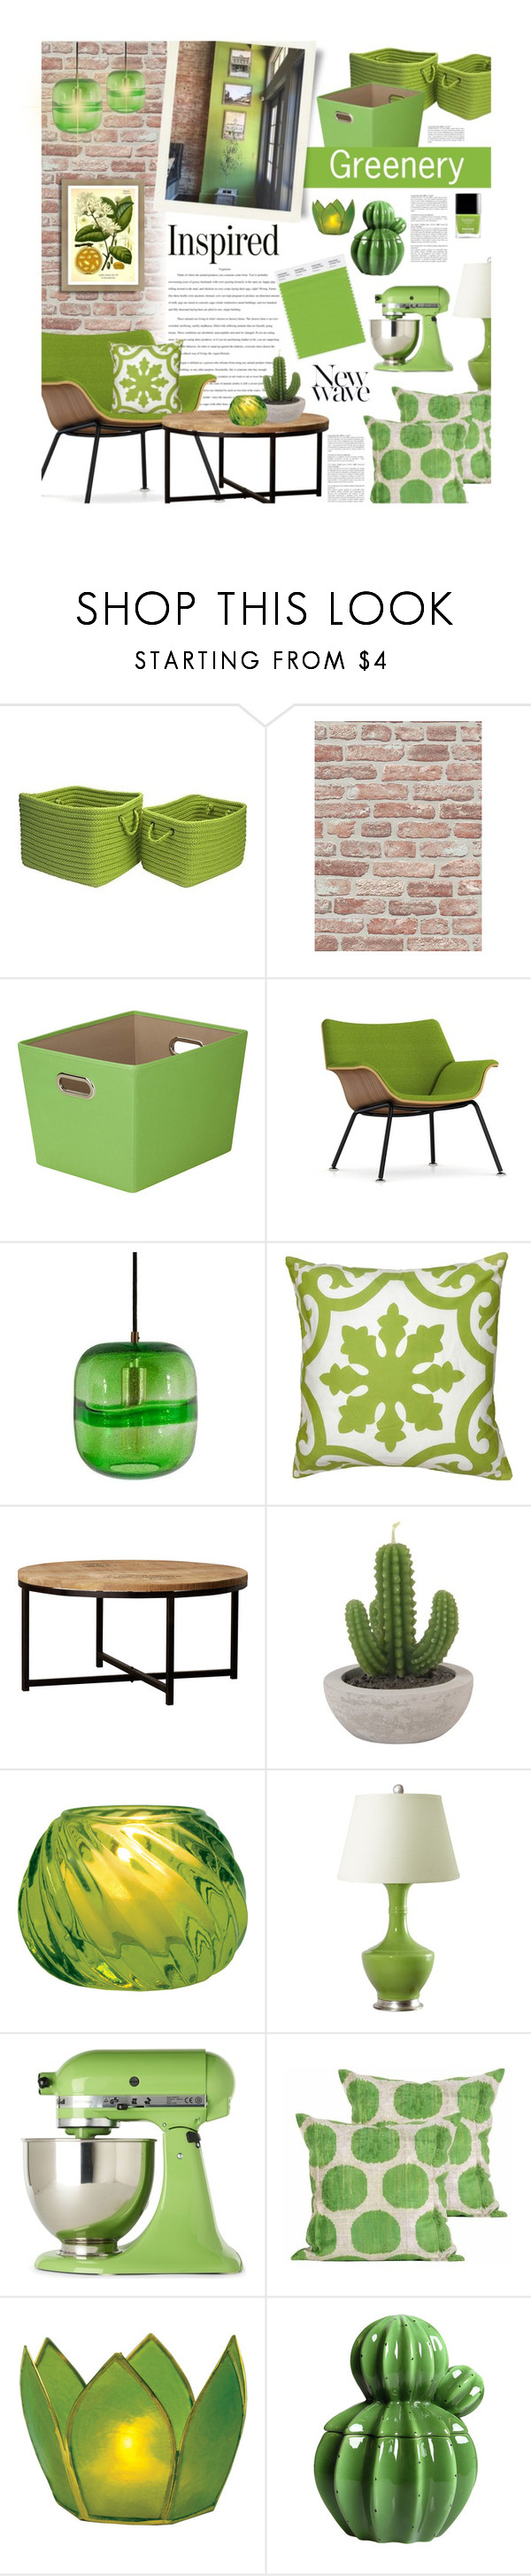 """""""Greenery"""" by ellergy ❤ liked on Polyvore featuring interior, interiors, interior design, home, home decor, interior decorating, Home Decorators Collection, BD Fine Wallcoverings, Honey-Can-Do and Herman Miller"""